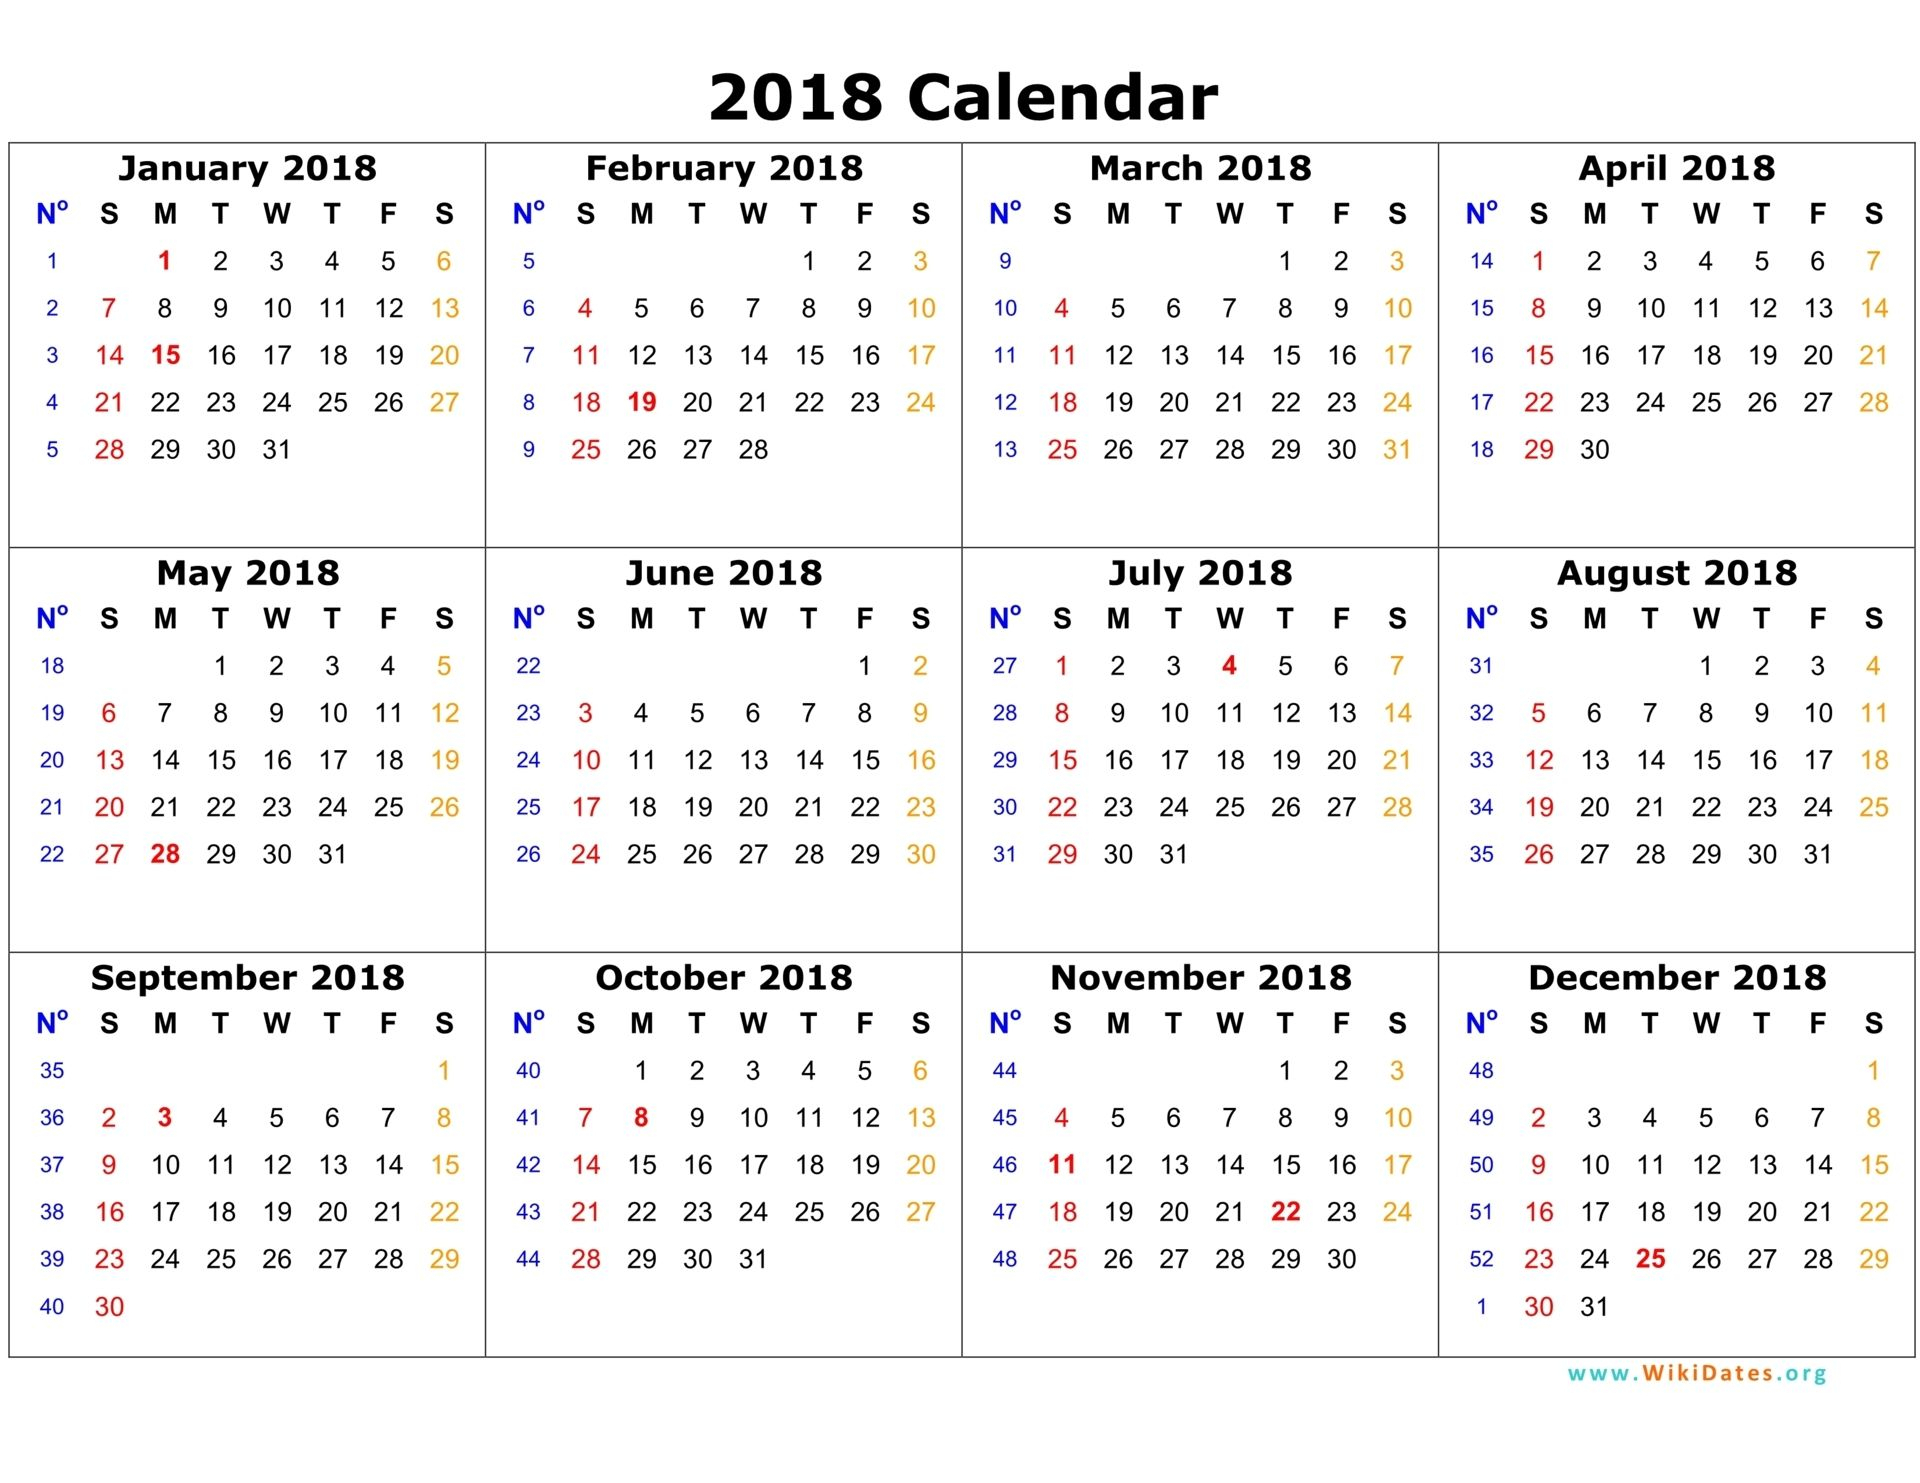 2018 Calendar On One Page | Calendar Template 2016 | Planner Stuff regarding Template For Calendar With 12 Months On One Page